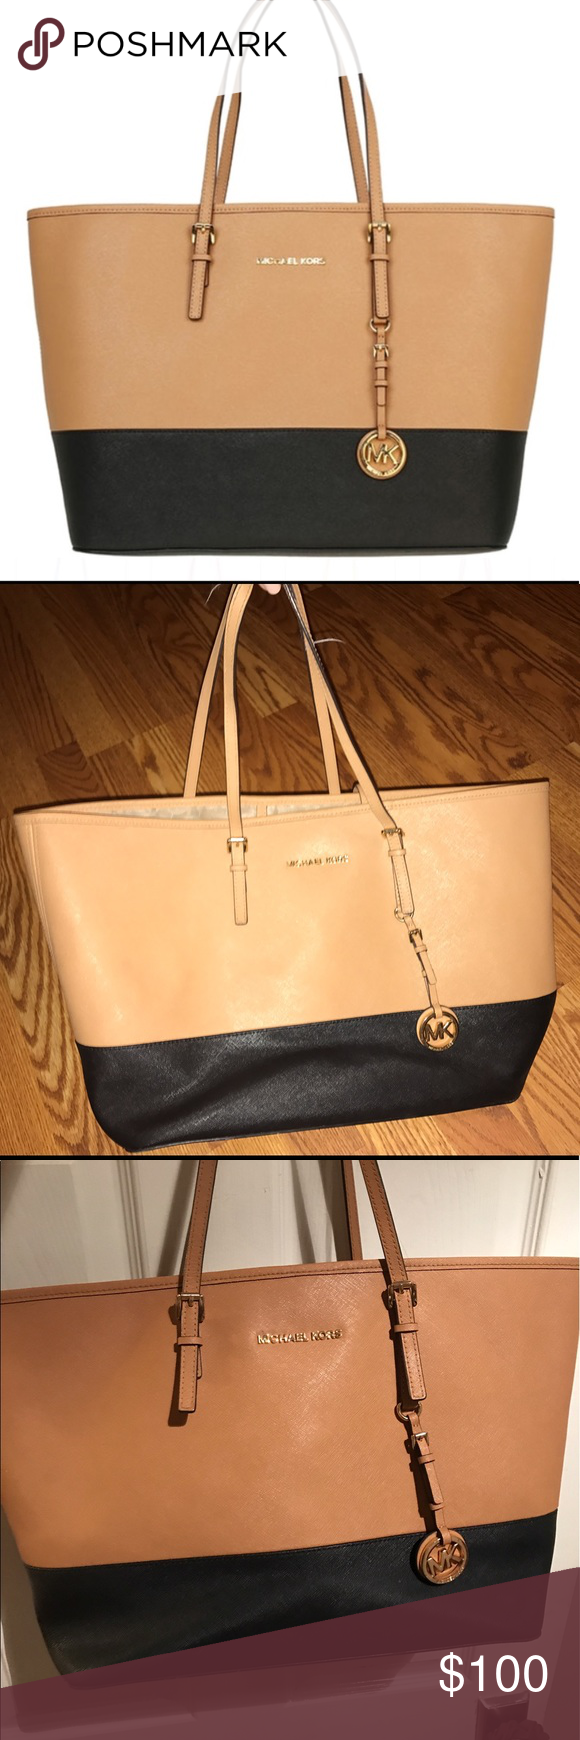 MICHAEL KORS Jet set 2-toned Large tote! **Definitely open for offers*** This bag was given to me and was used for about a month and has not been used since. It is such a useful bag, it can be used for travel, daily use, or even for college students who need to carry their books. The inside has a bit of cosmetic damage, but nothing noticeable from the outside. The outside is in great condition, but again the inside is a bit scuffed up. Michael Kors Bags